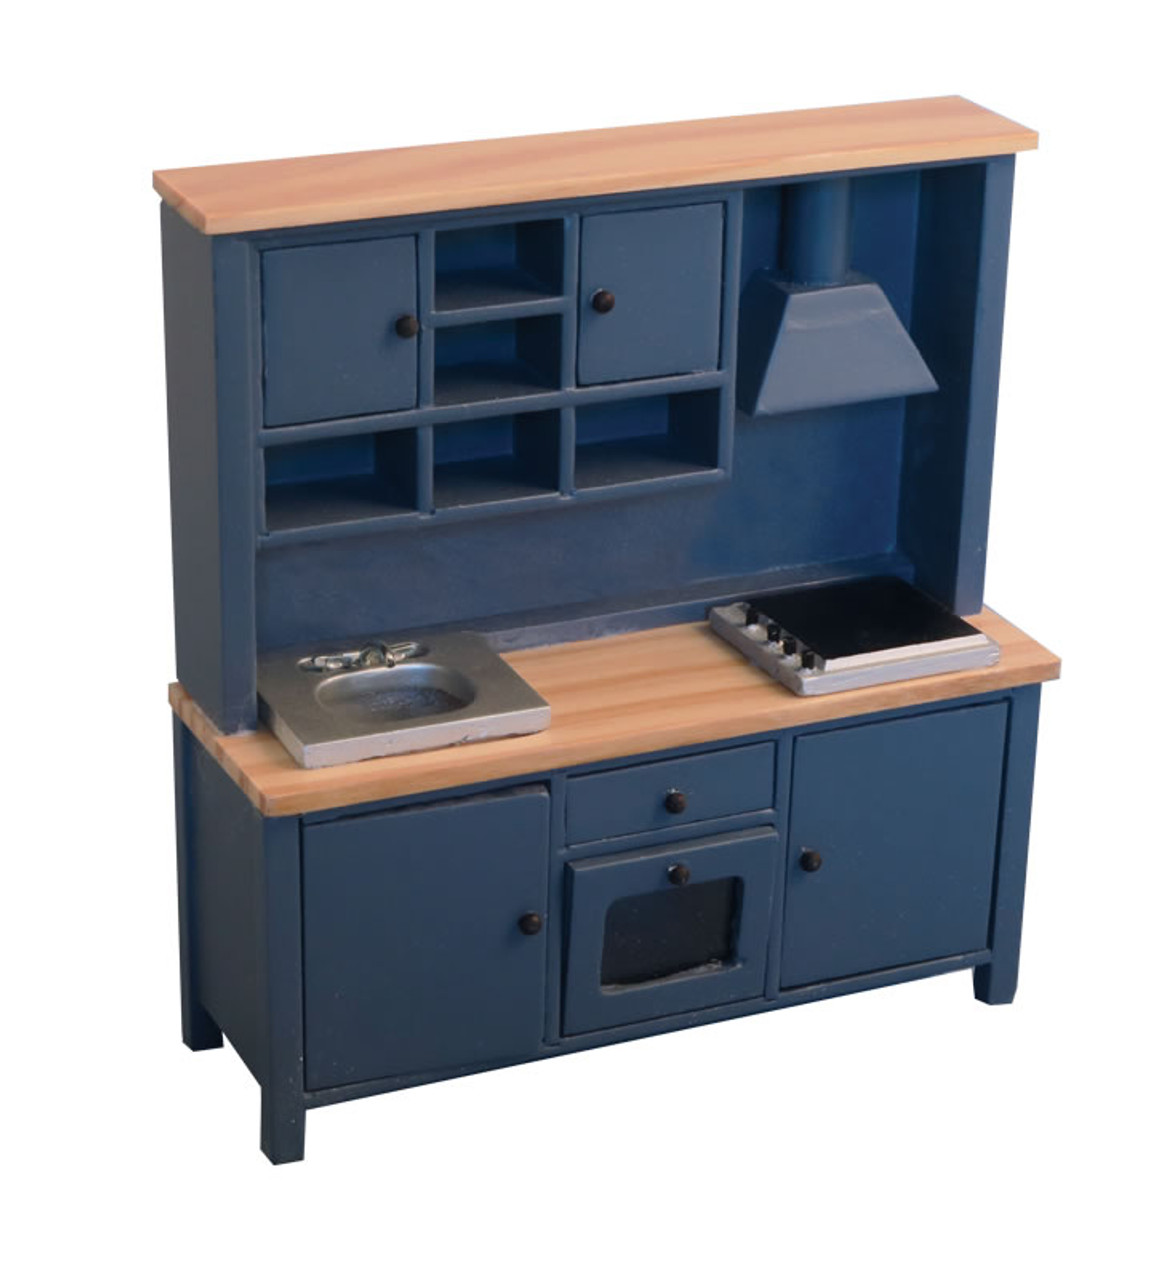 All-in-one Kitchen System Blue and Pine 9299